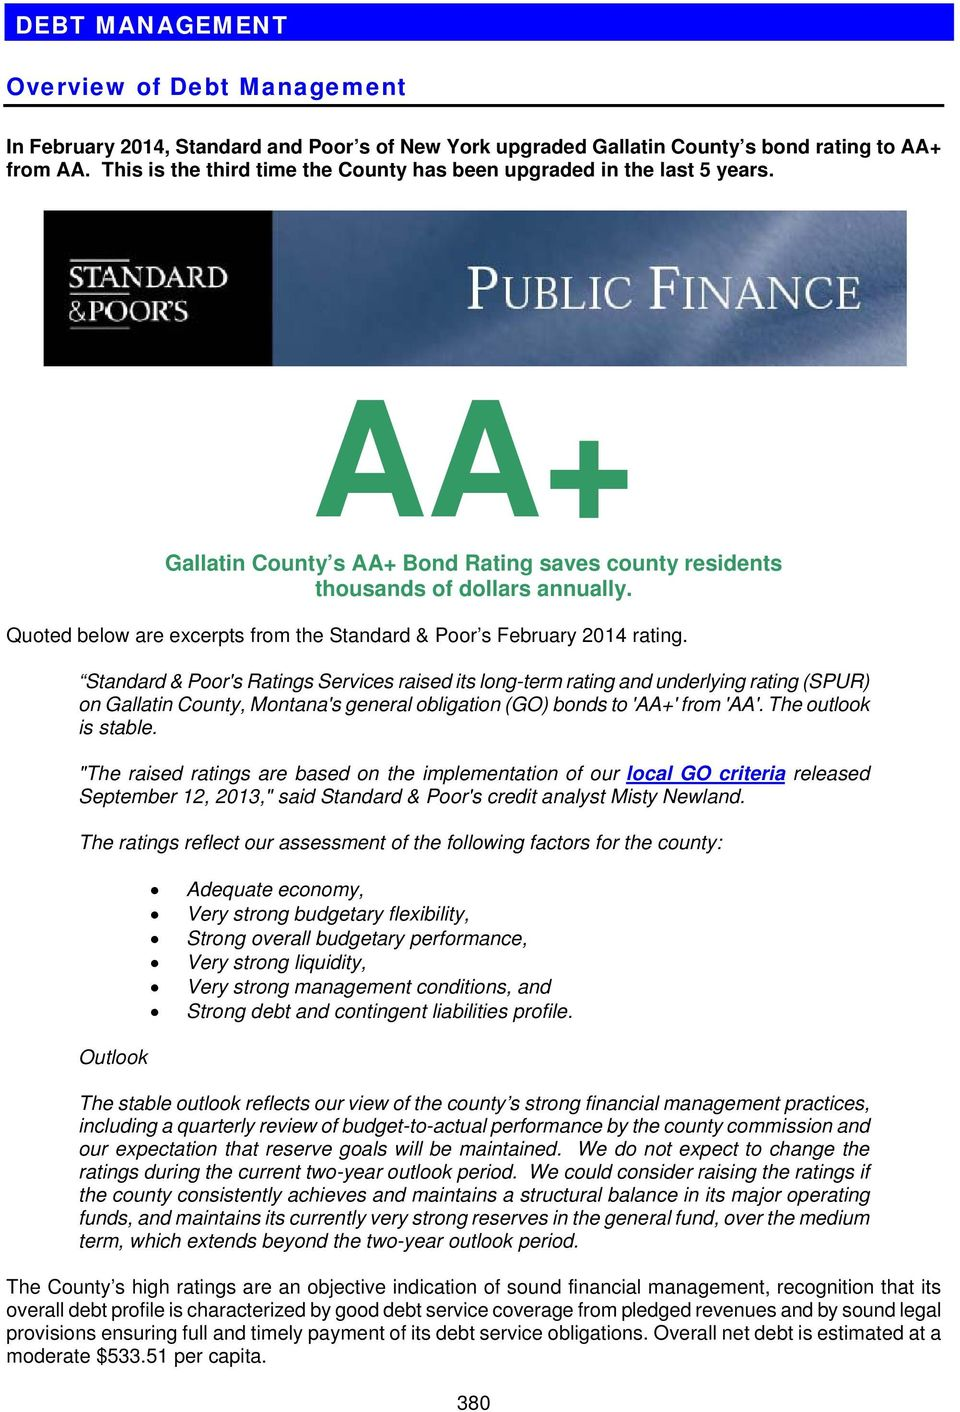 Standard & Poor's Ratings Services raised its long-term rating and underlying rating (SPUR) on Gallatin County, Montana's general obligation (GO) bonds to 'AA+' from 'AA'. The outlook is stable.